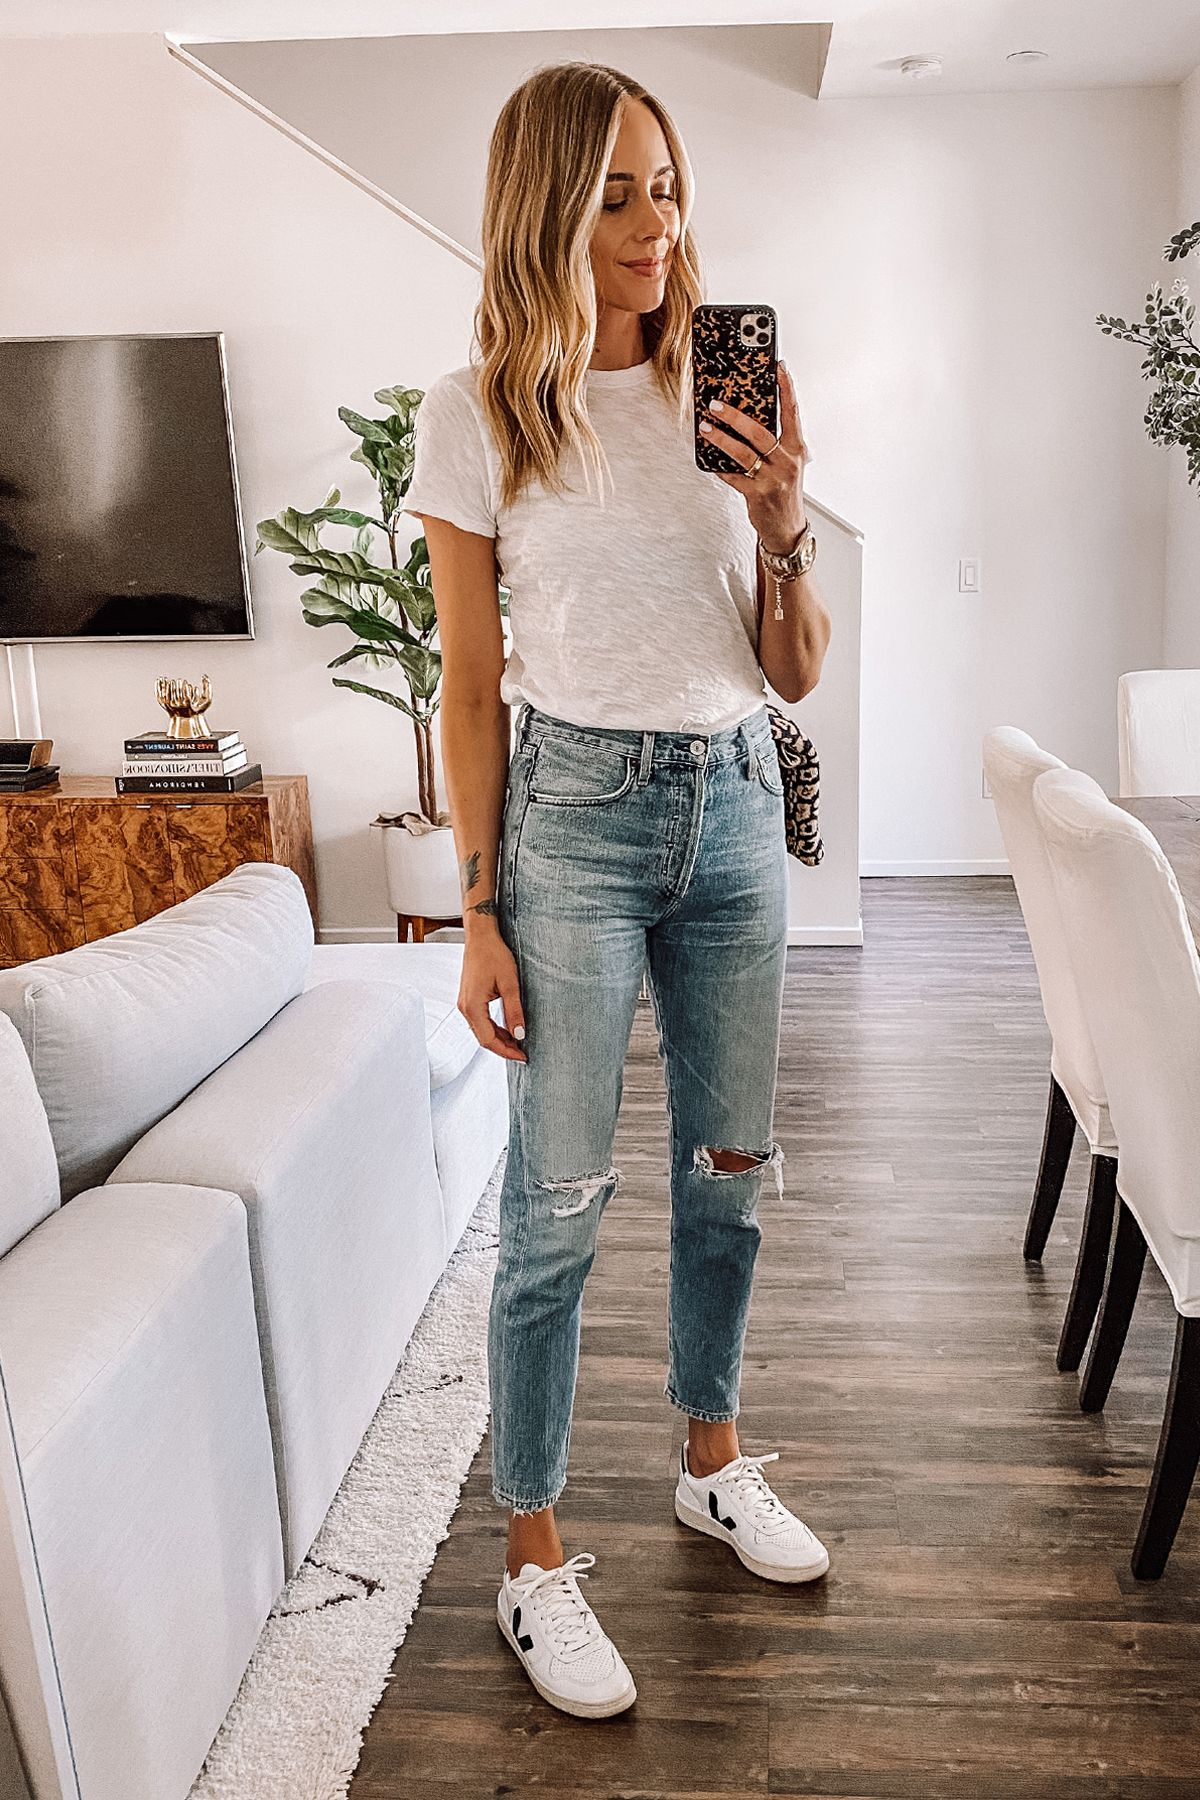 And jeans outfit shirt Celebrities Prove